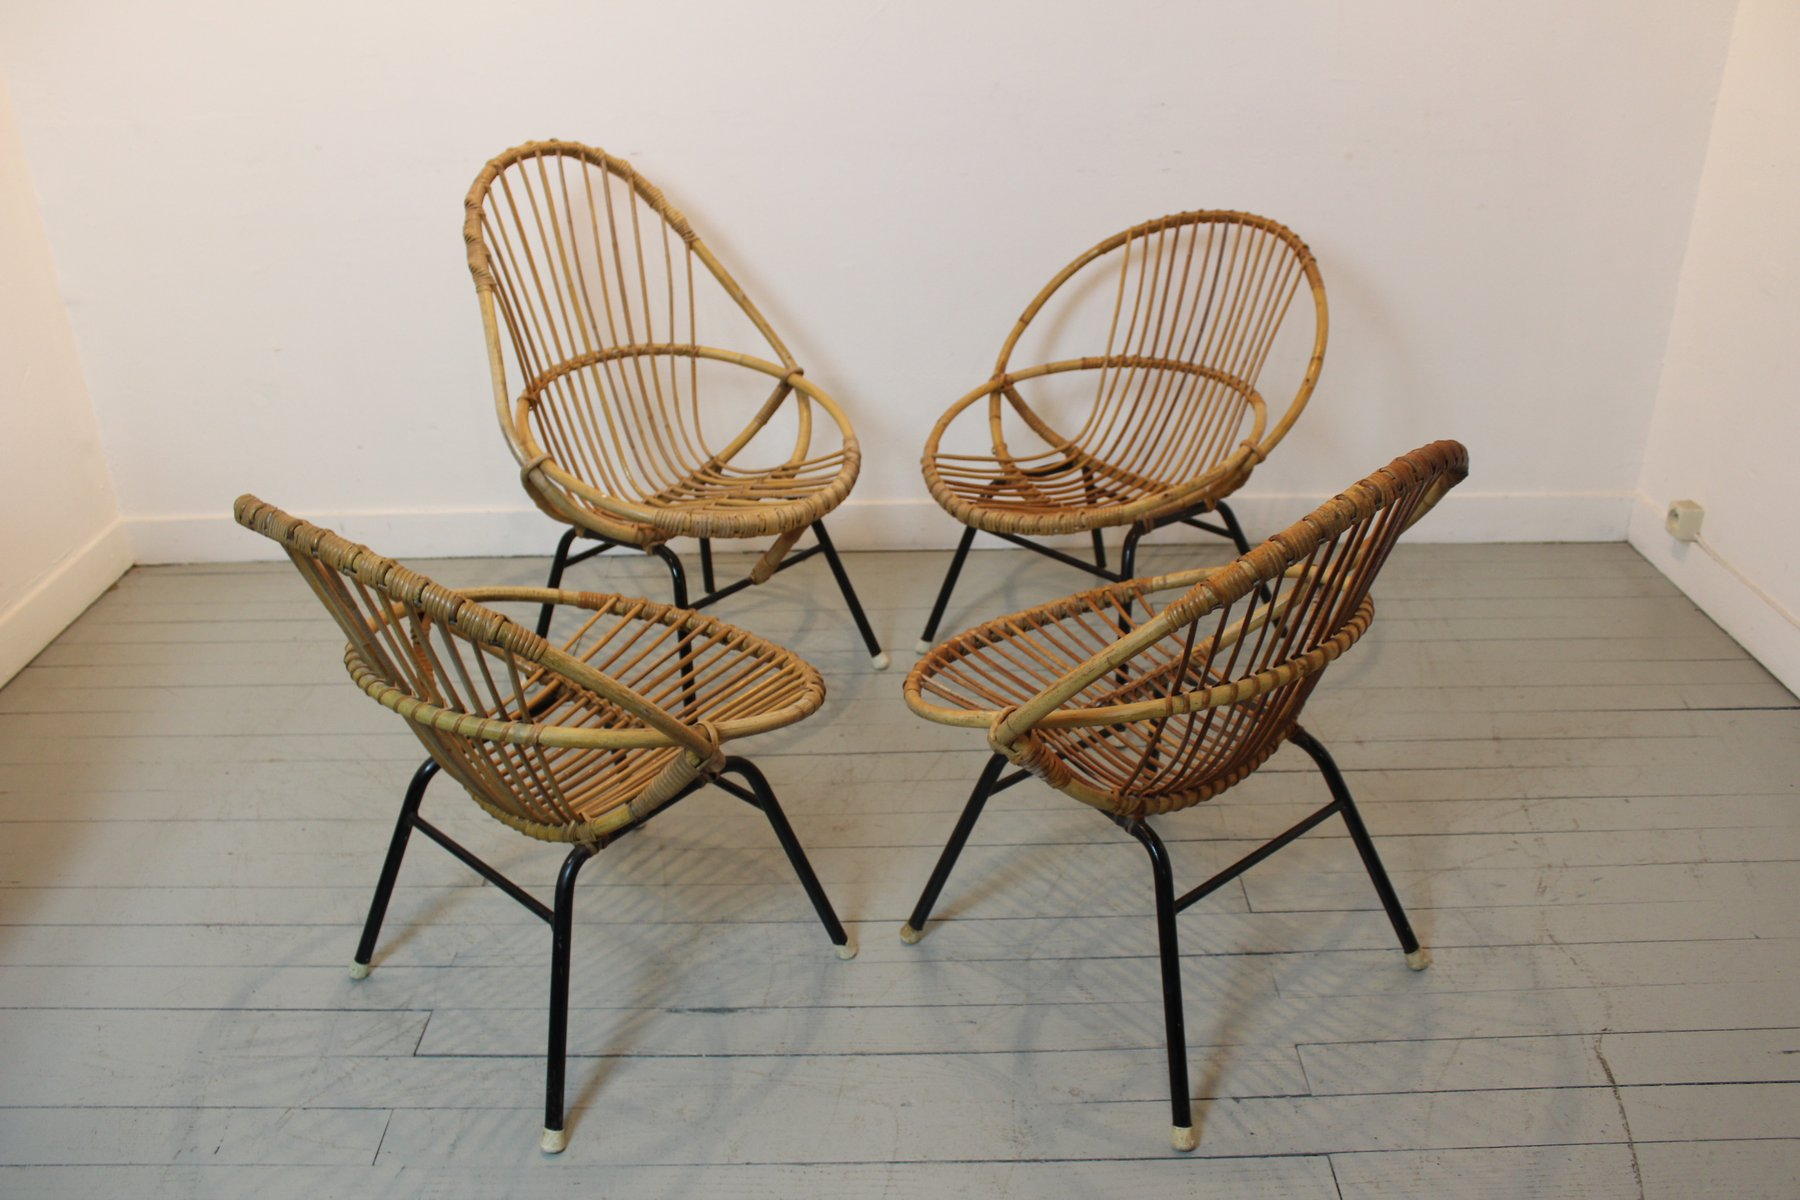 Vintage French Bamboo & Rattan Chairs Set of 4 for sale at Pamono